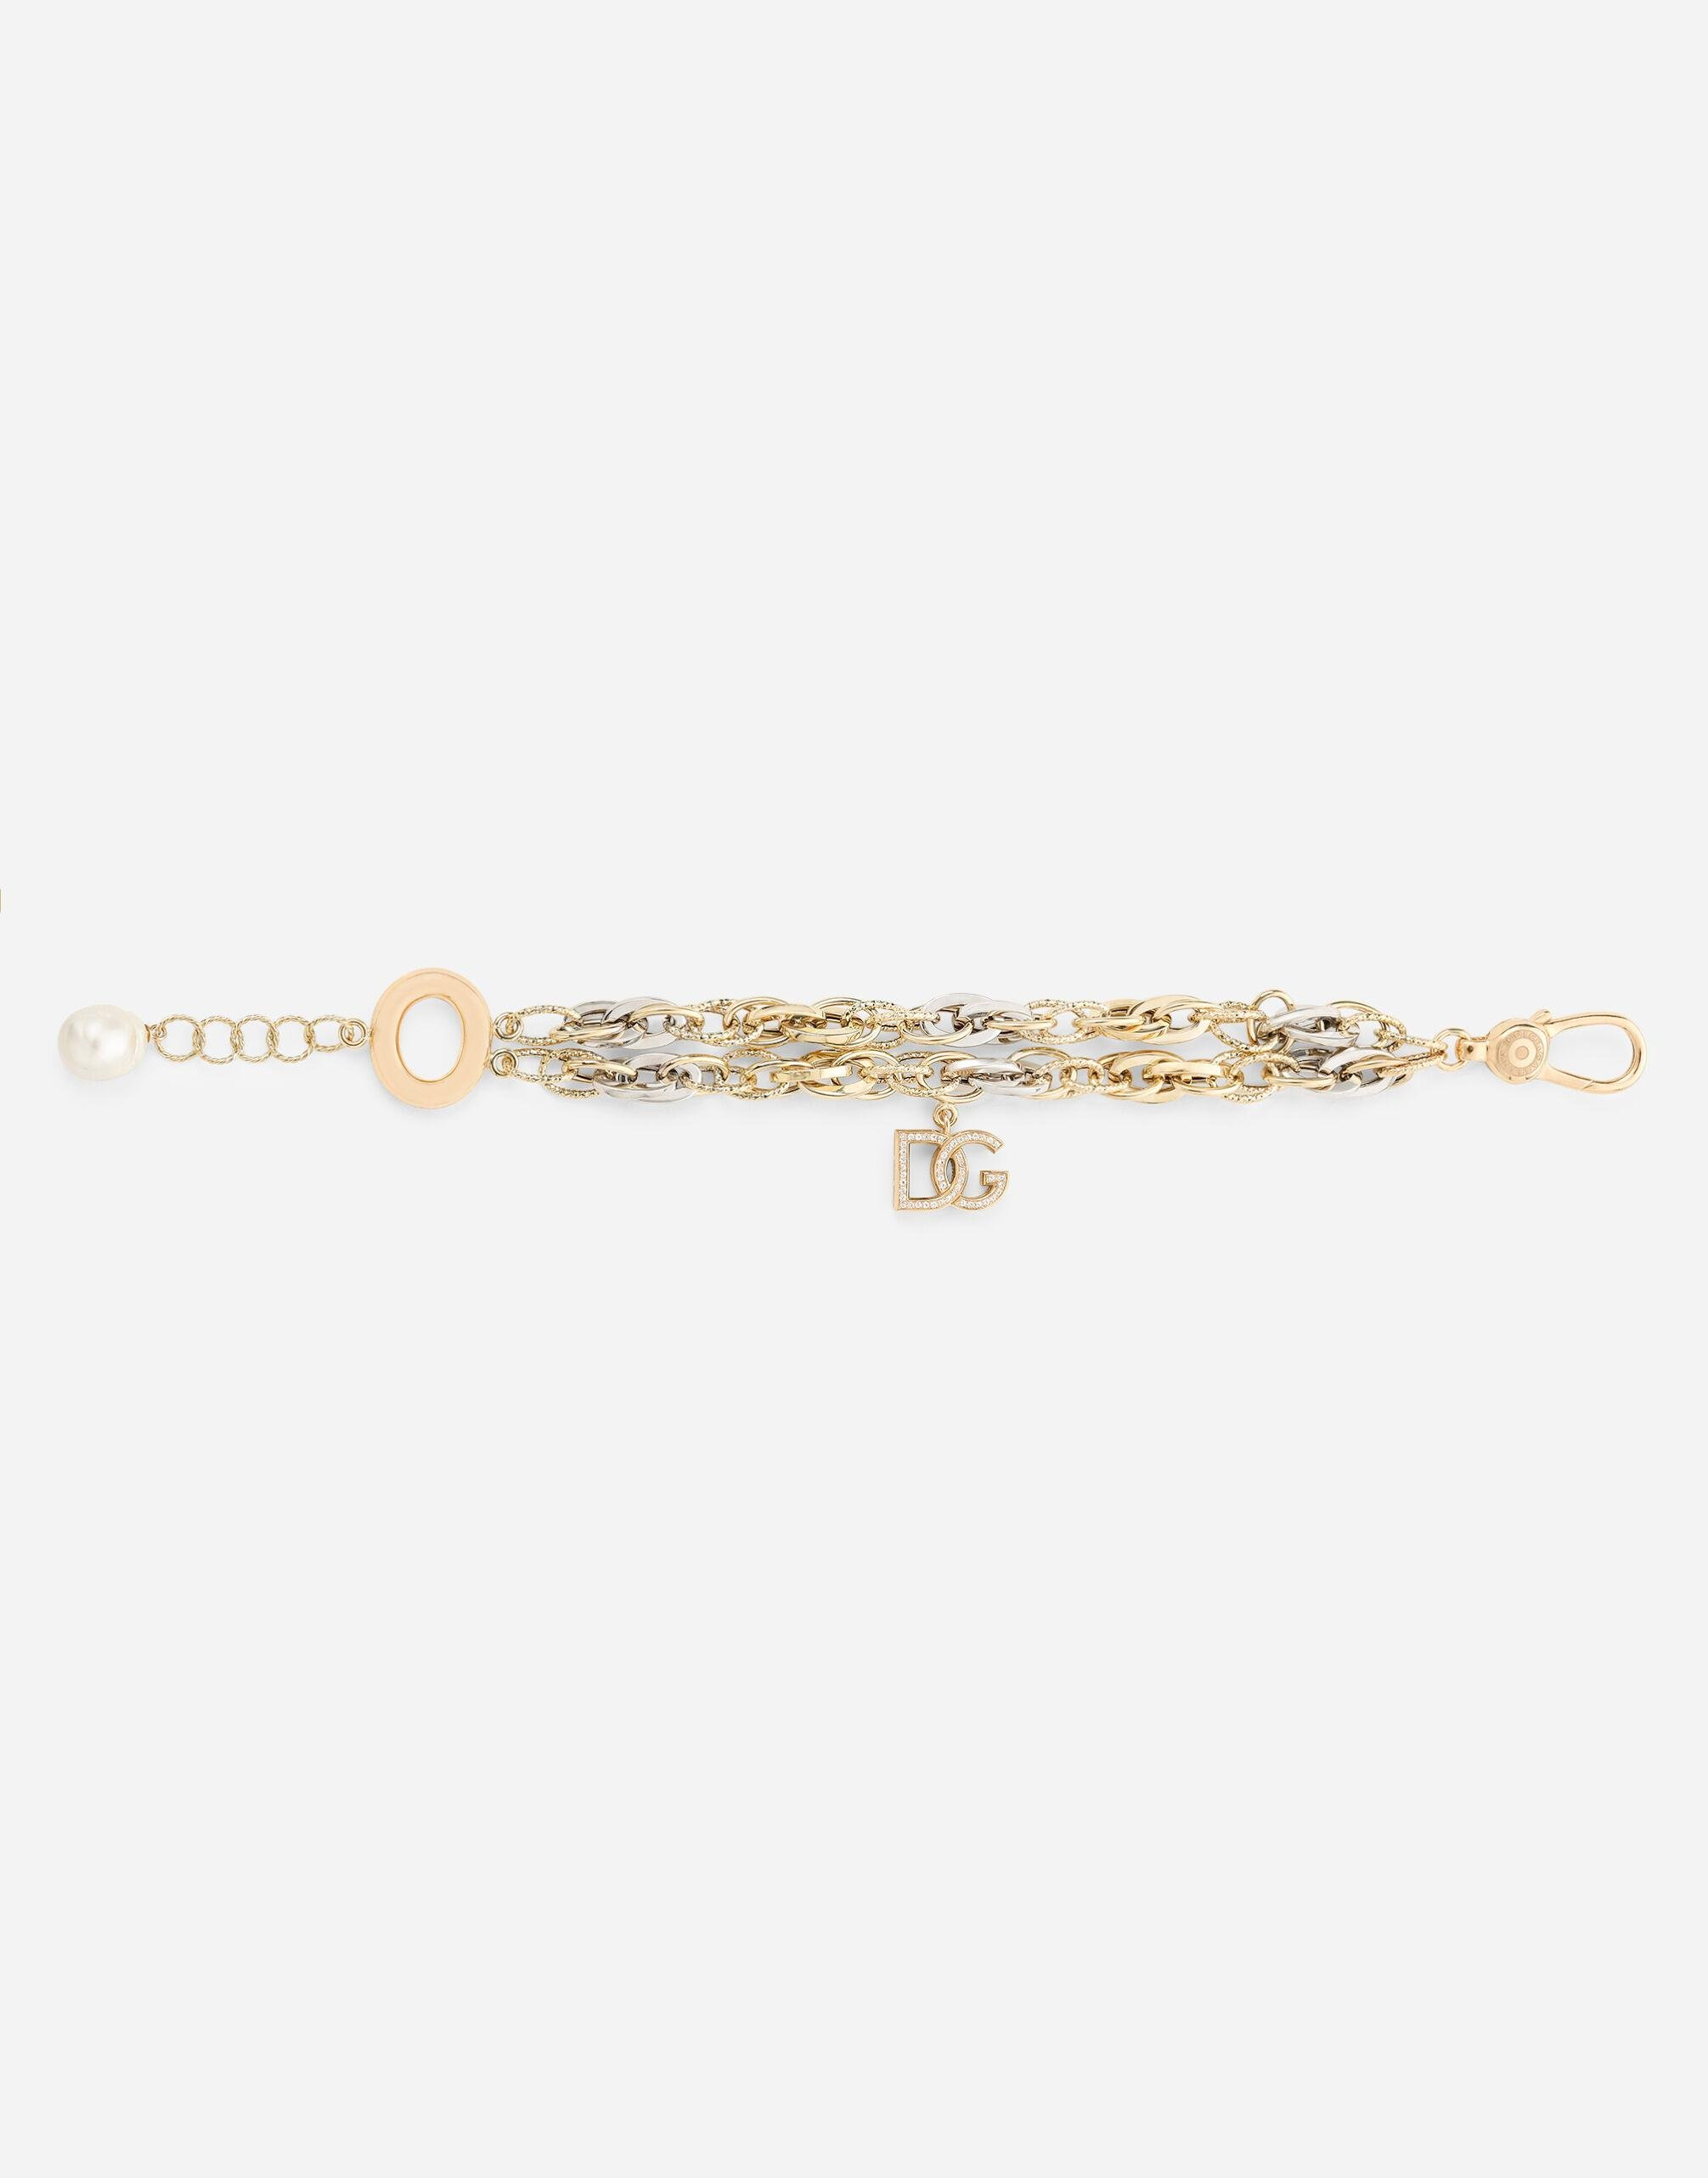 Logo bracelet in yellow and white 18kt gold with colorless sapphires 1